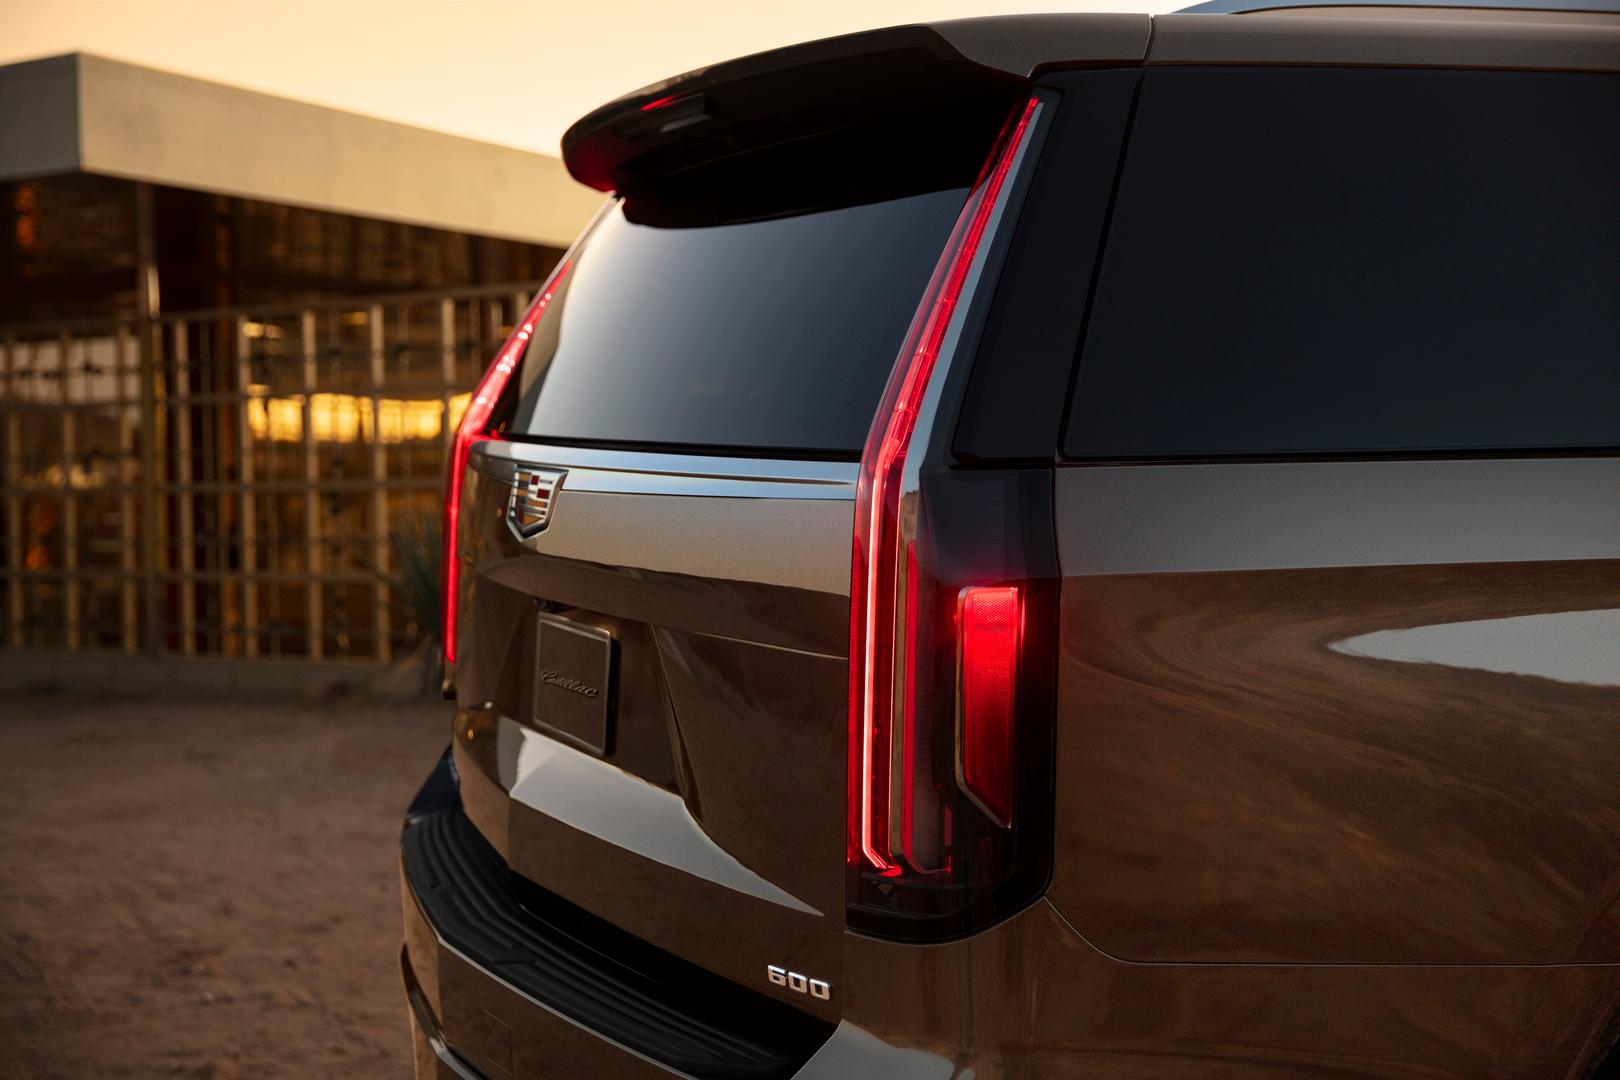 2021 Cadillac Escalade Rear Lights